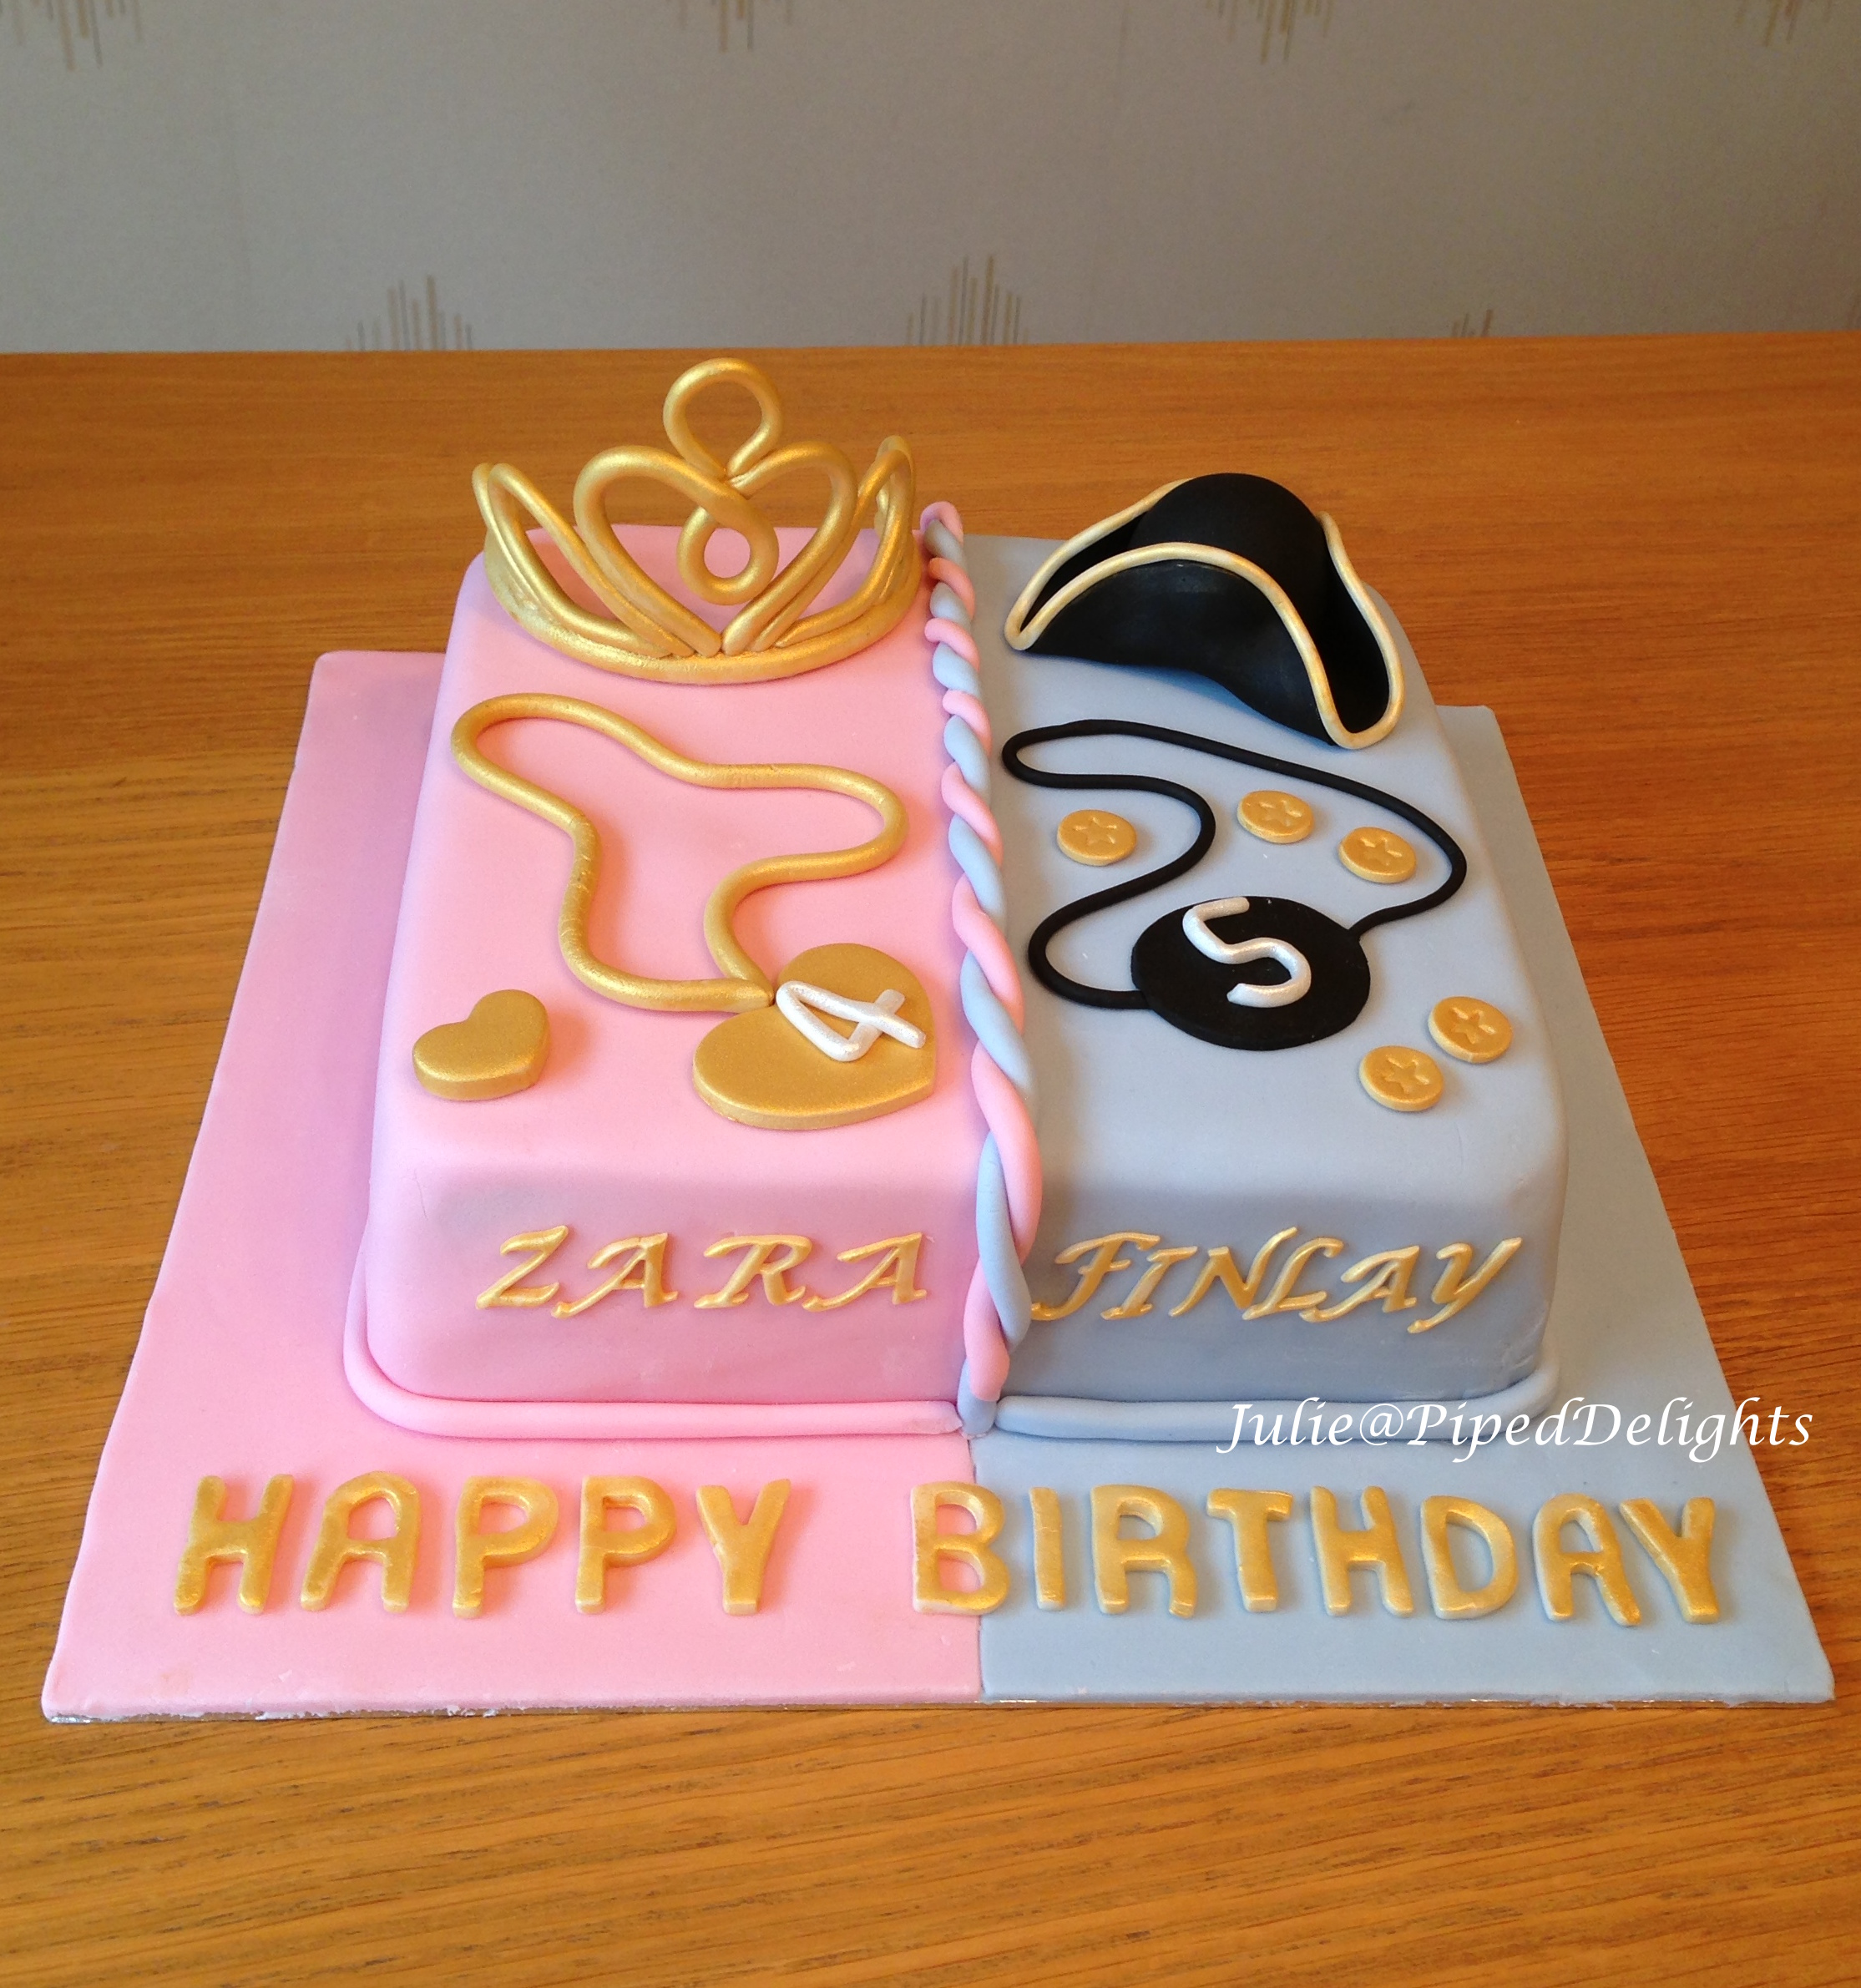 Stupendous Piped Delights Julie Cakes Cupcakes Guildford Surrey Personalised Birthday Cards Xaembasilily Jamesorg